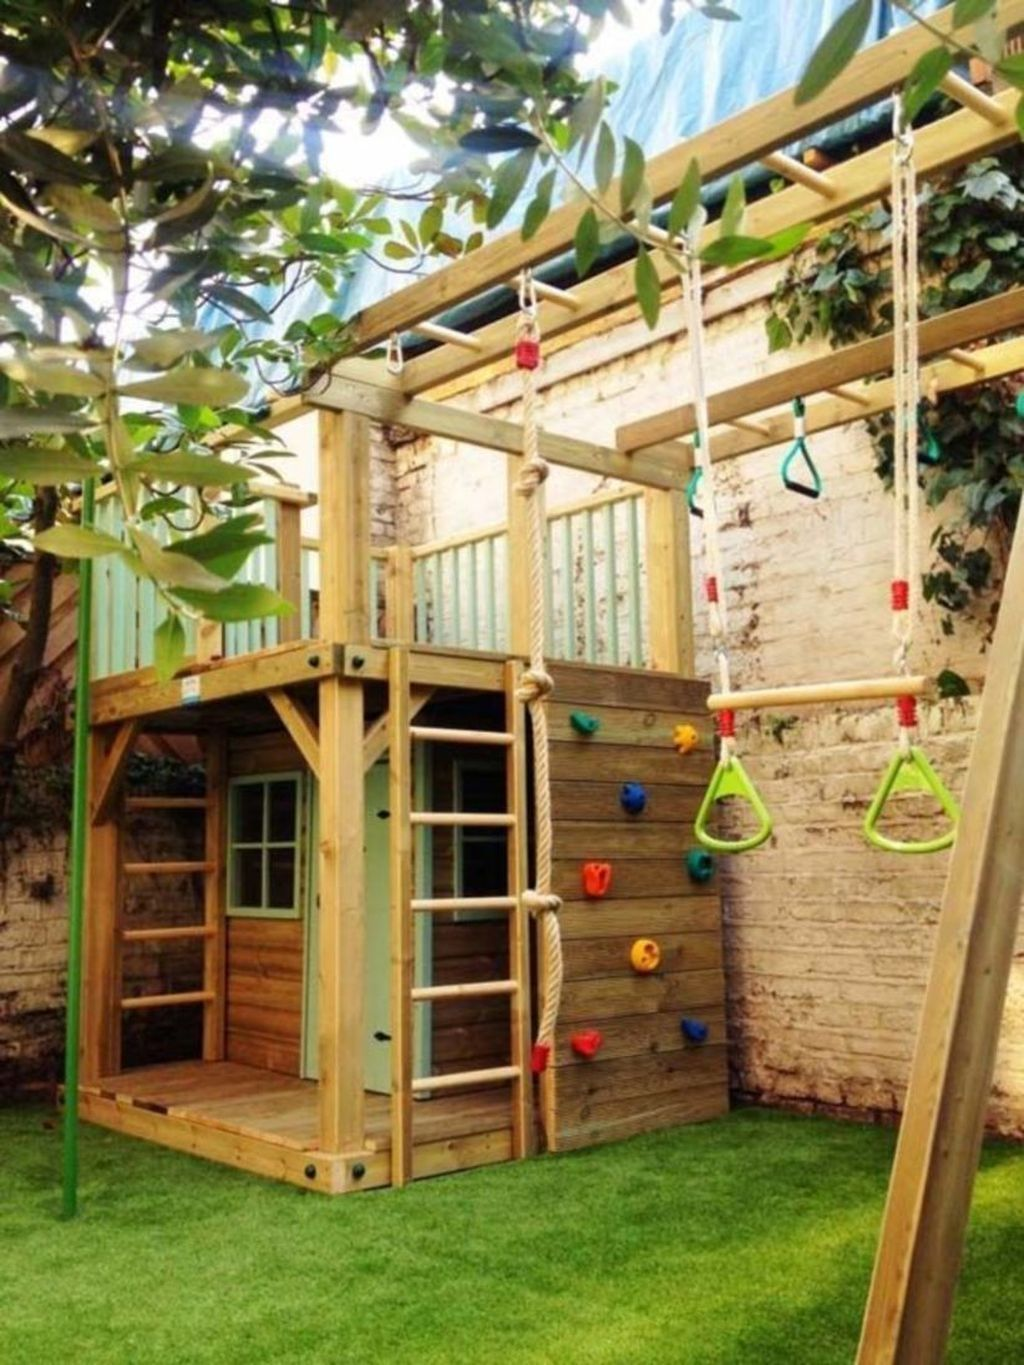 31 Admirable Backyard Playground Design Ideas For Kids Dhoomee Backyard Playground Backyard Fun Backyard Projects